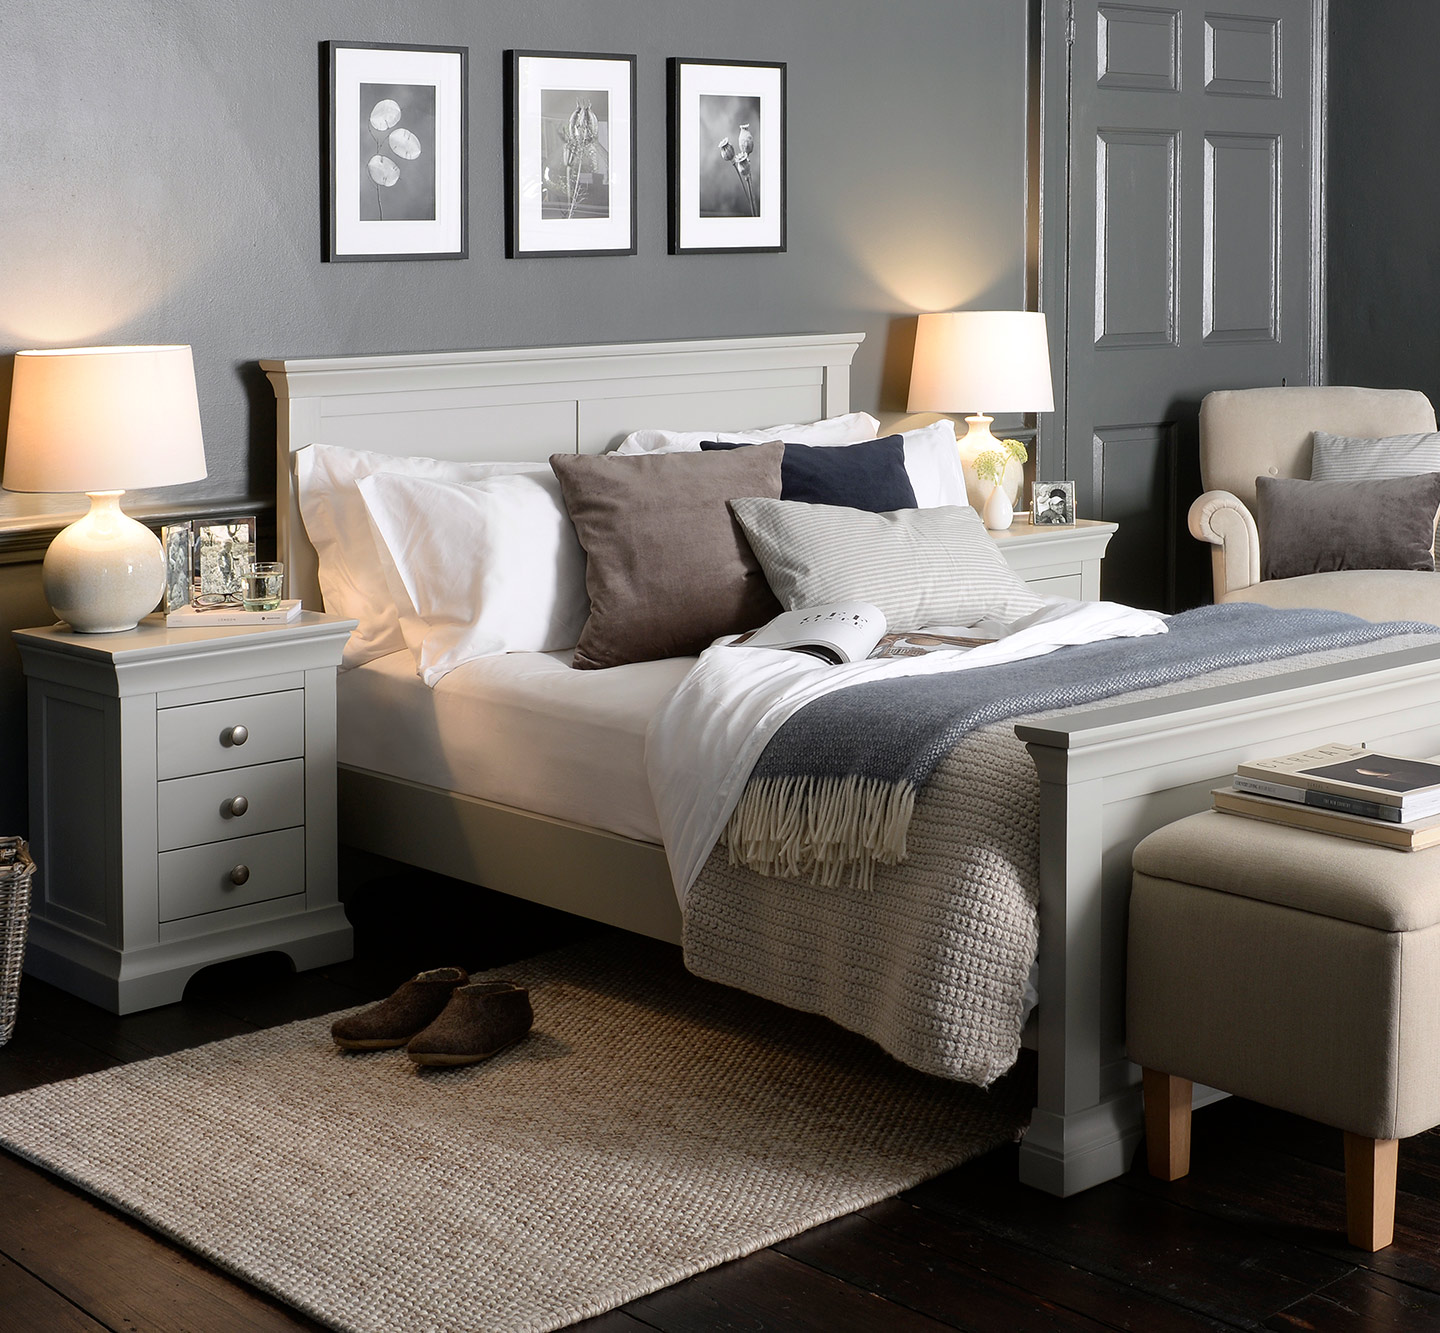 Cotswold Co Chantilly handcrafted Pebble Grey bedroom furniture collection, painted bed, ottoman, blanket box, bedside tables.